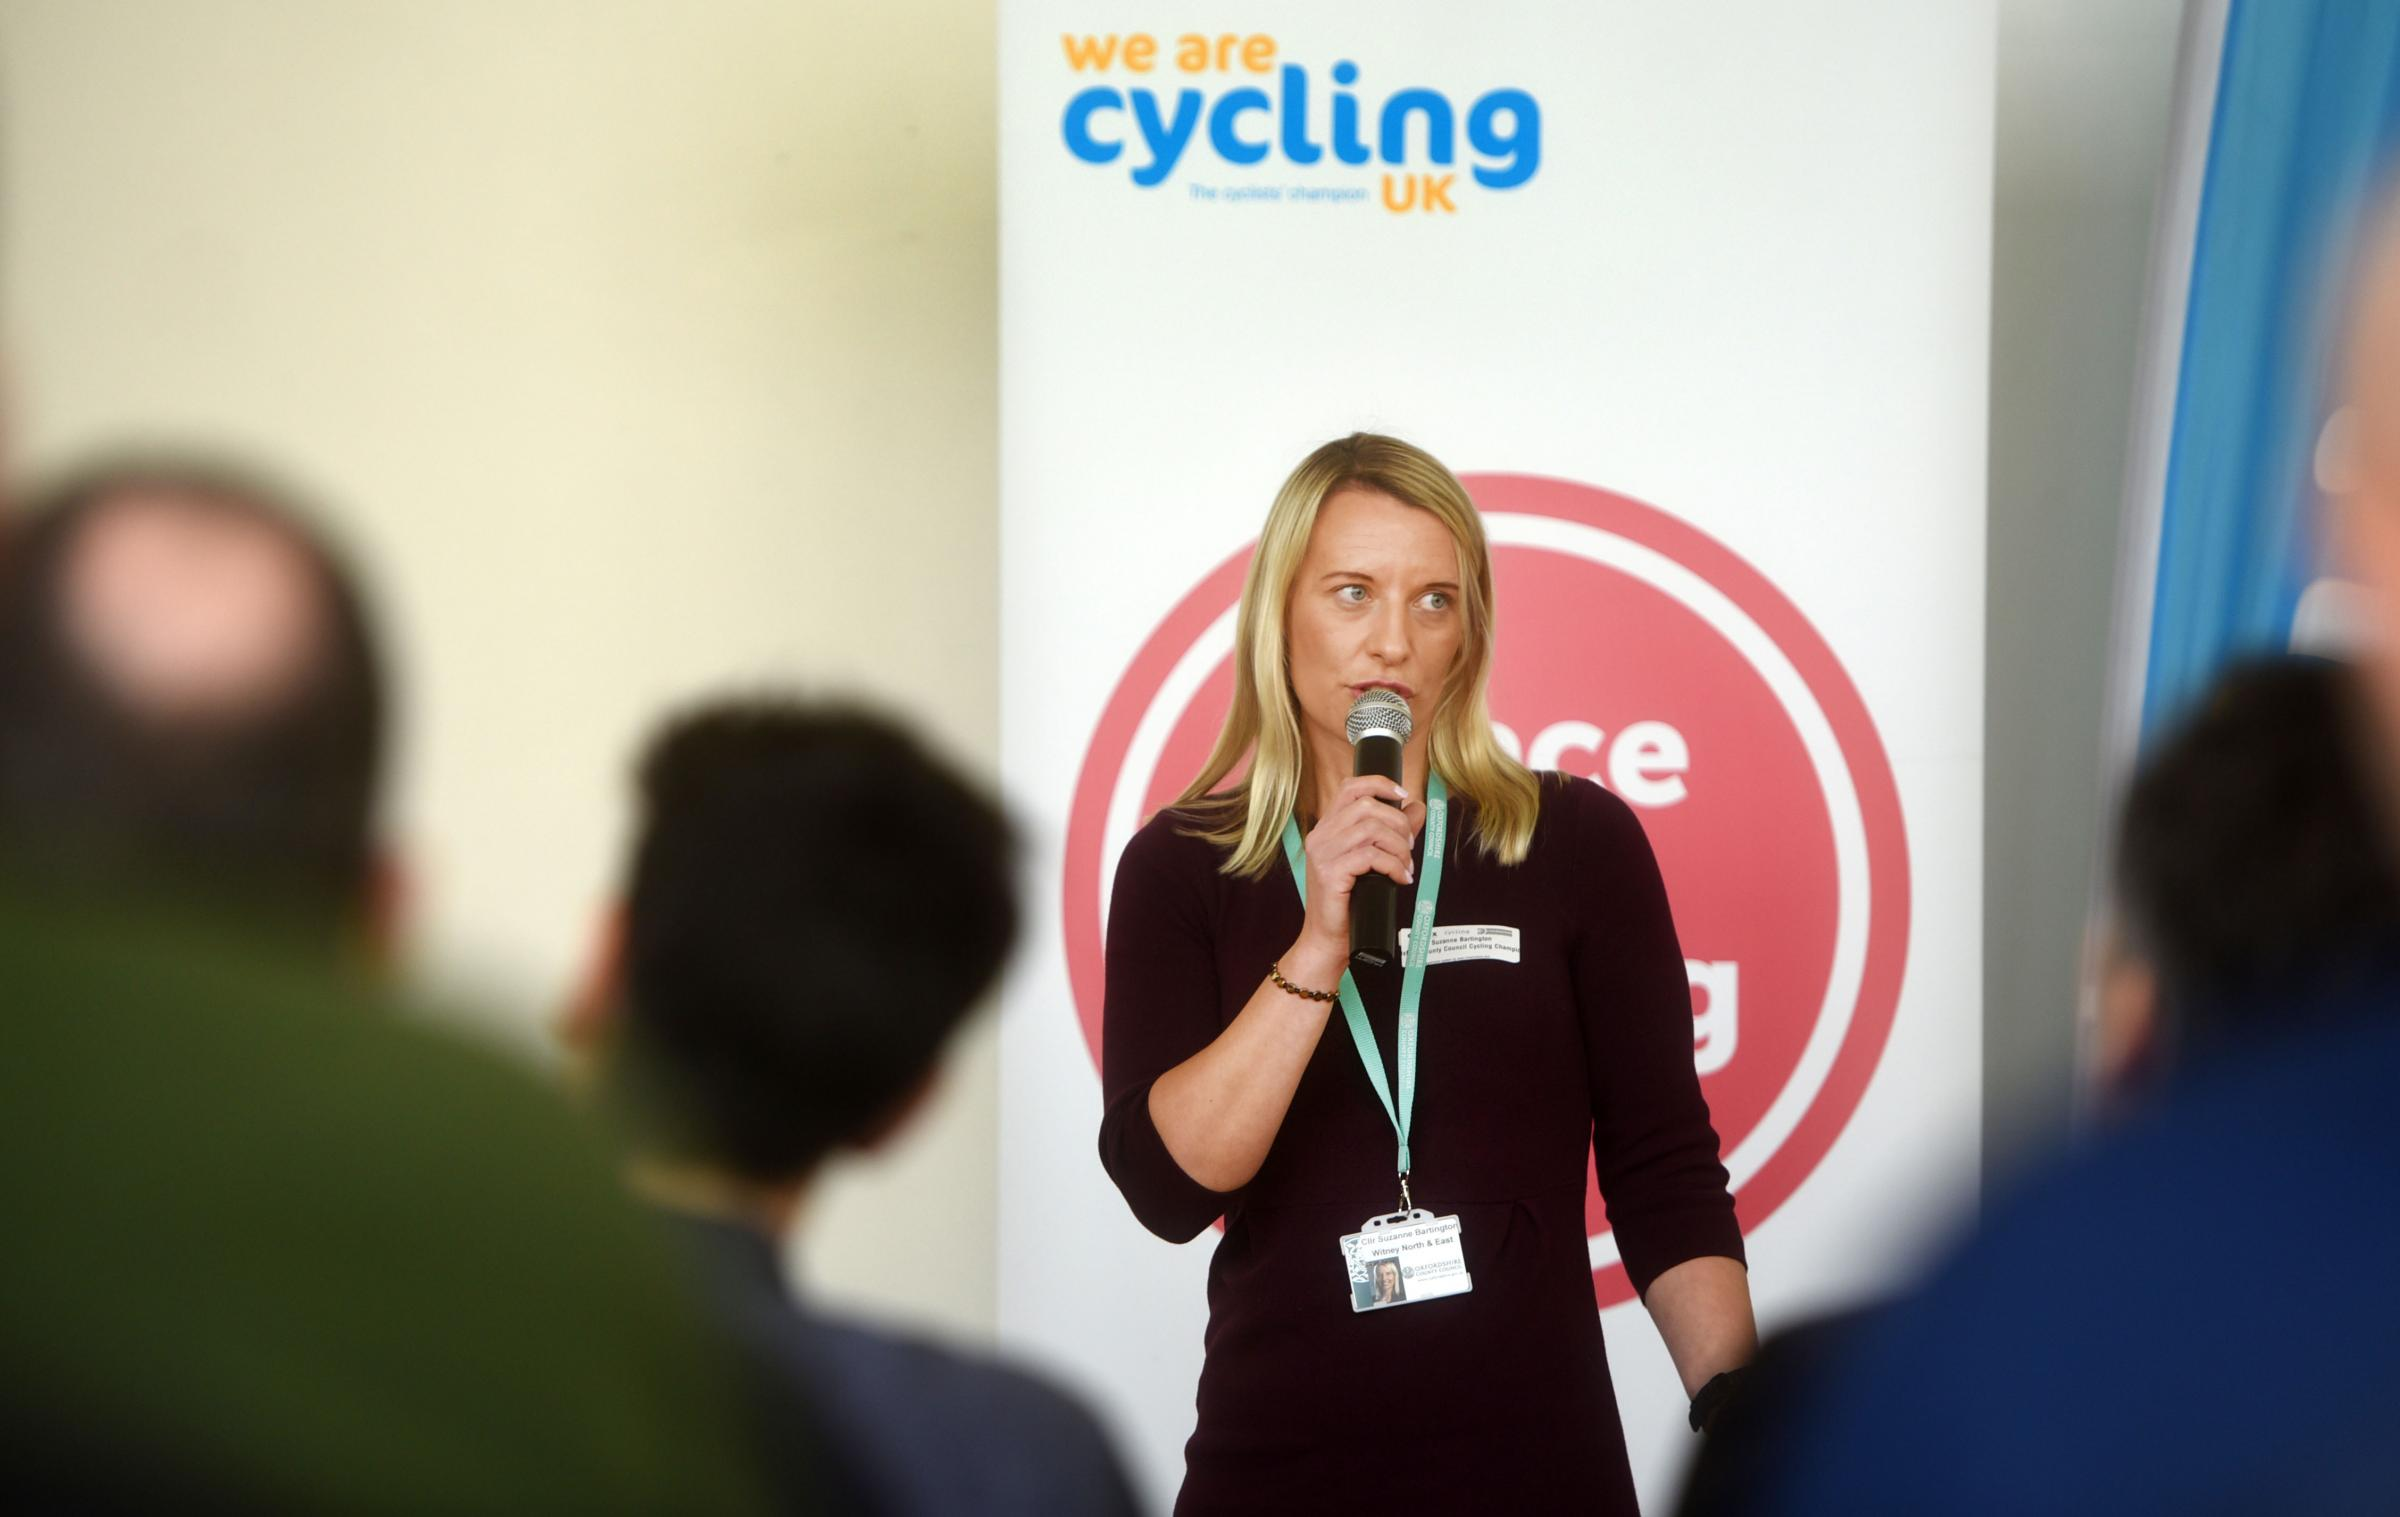 Suzanne Bartington speaking at a cycling event.